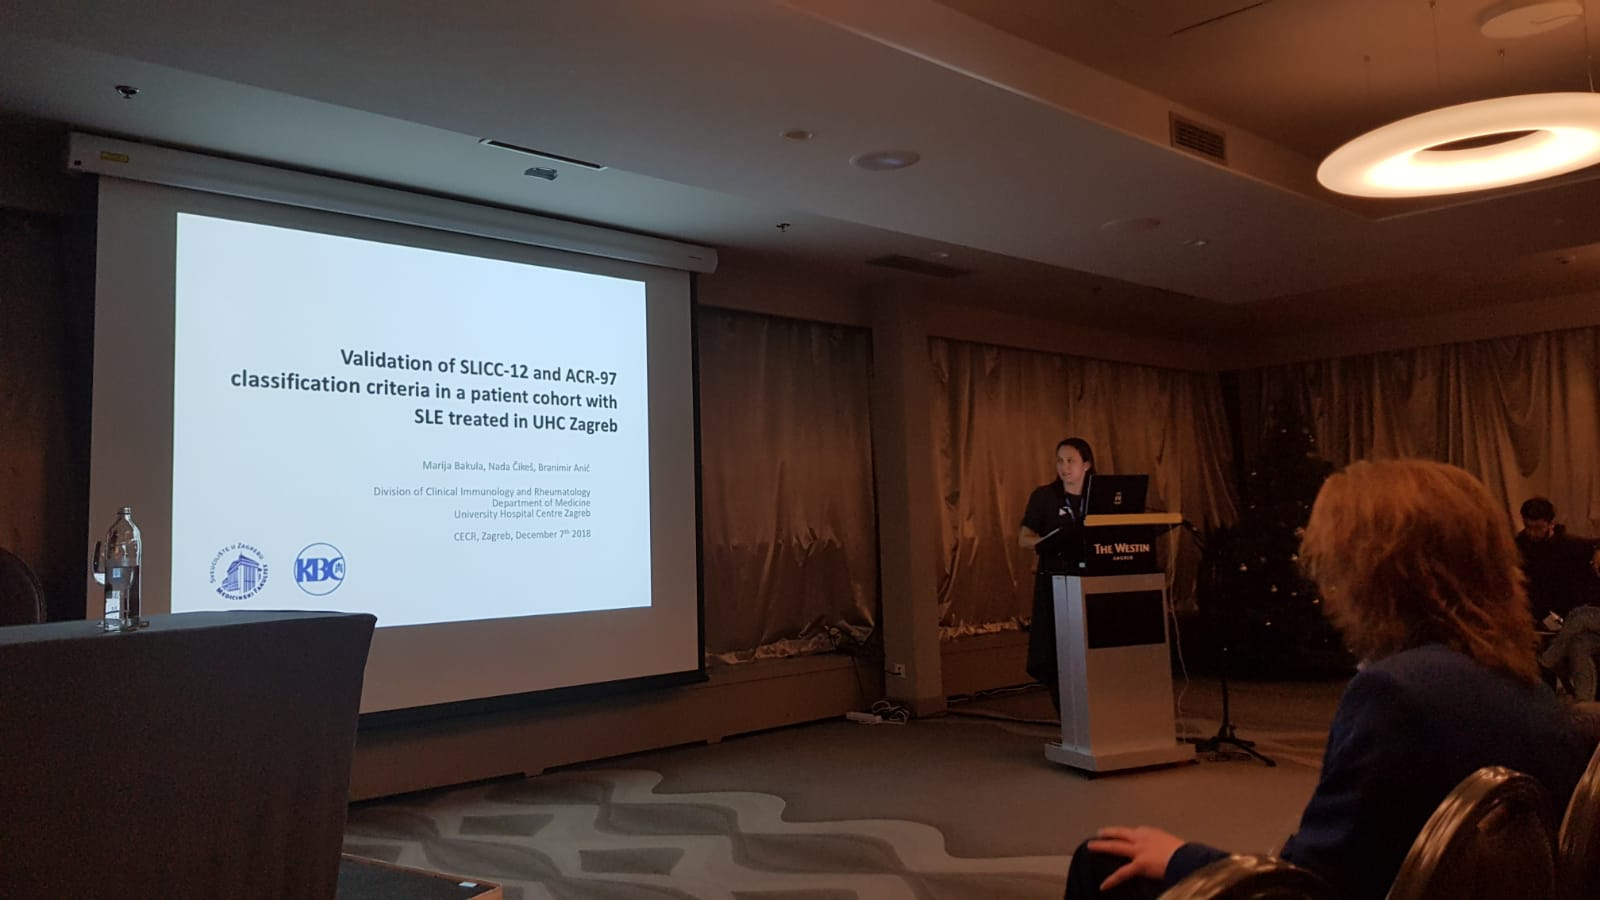 Emeunet On Twitter At Cecr In Zagreb Last Week Emeunet S Dr Marija Bakula Gives Her Talk At The Young Rheumatology Session On Her Validation Project Of The Acr97 And The Slicc12 Classification